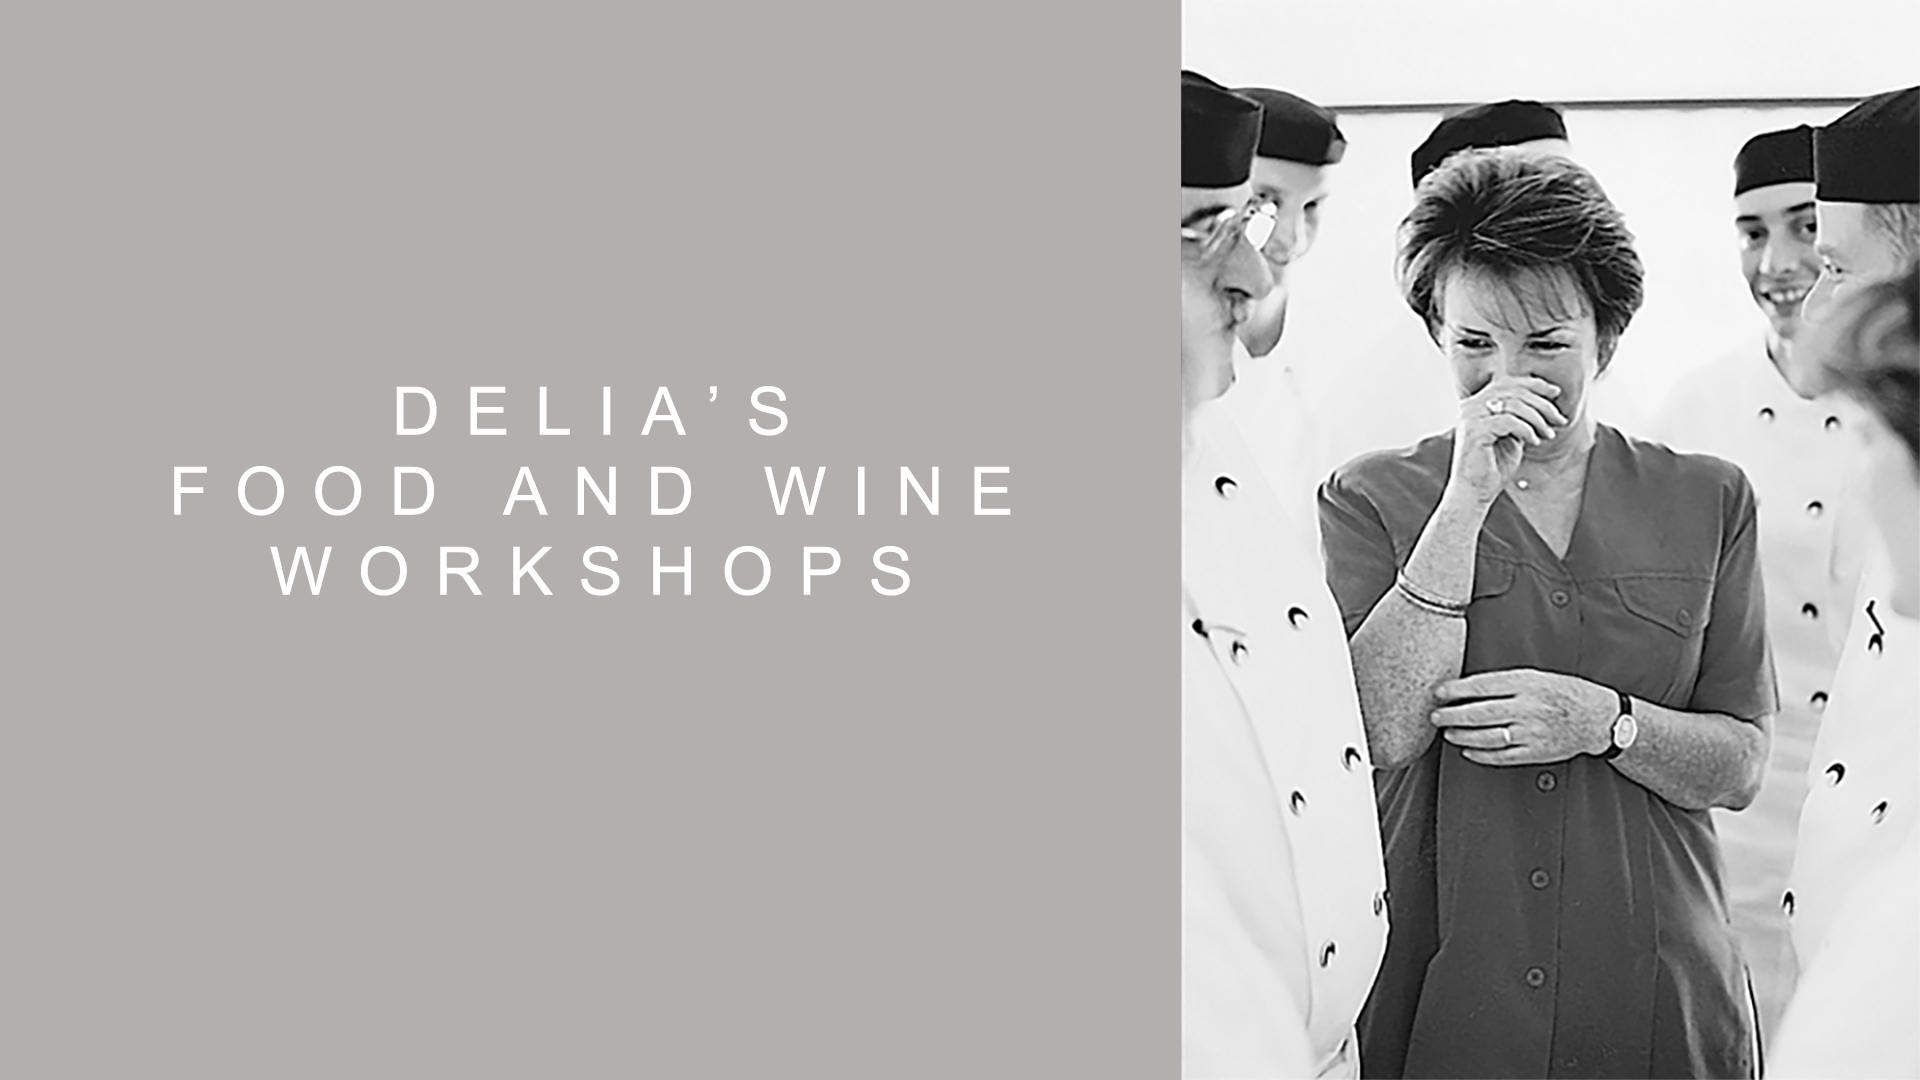 delias-canary-catering-to-host-food-and-wine-workshops-at-carrow-road